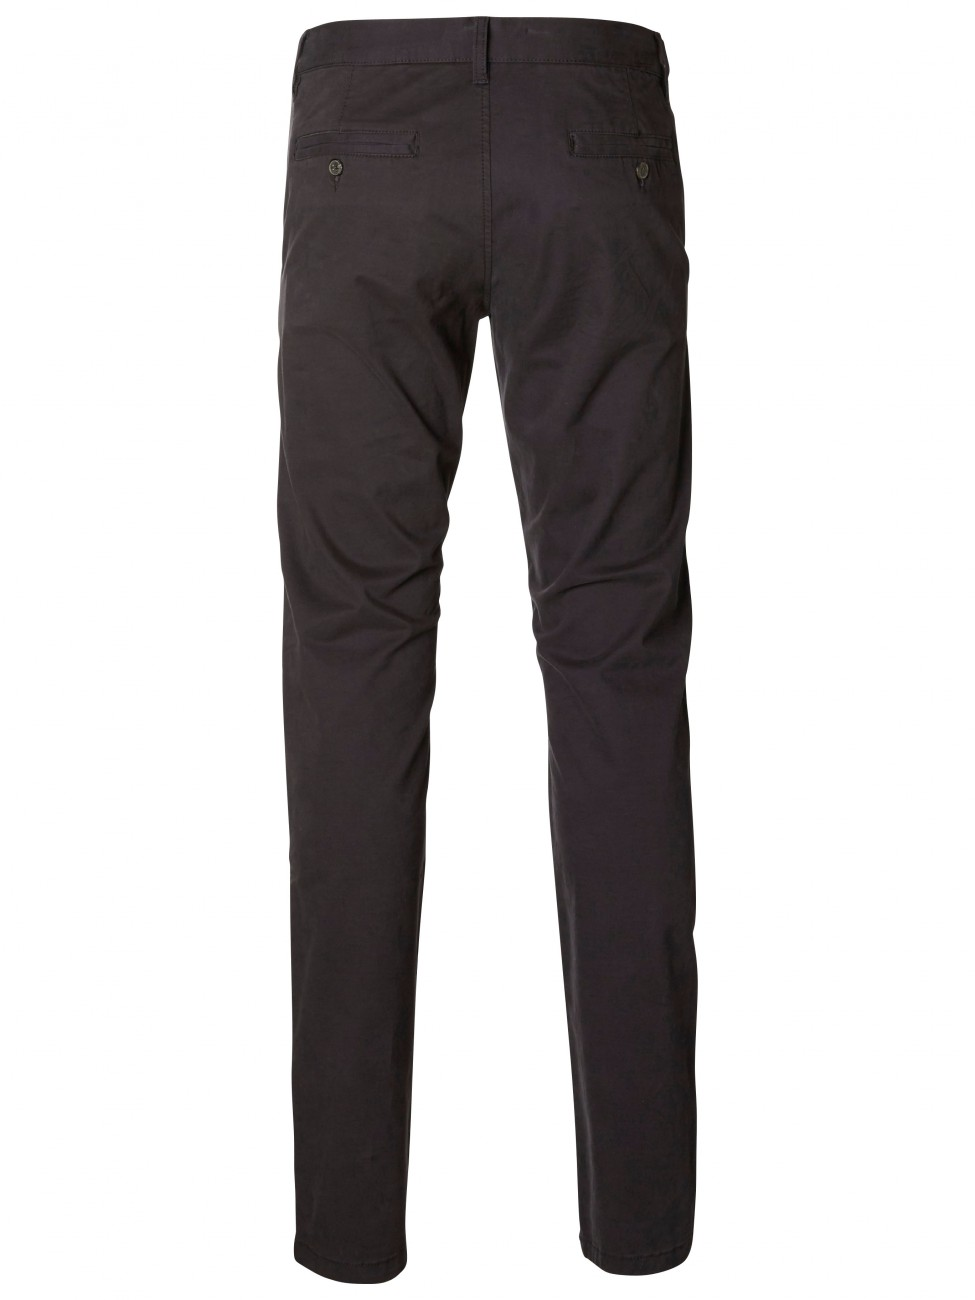 Selected Herren Chino Hose SHHONELUCA - Phantom